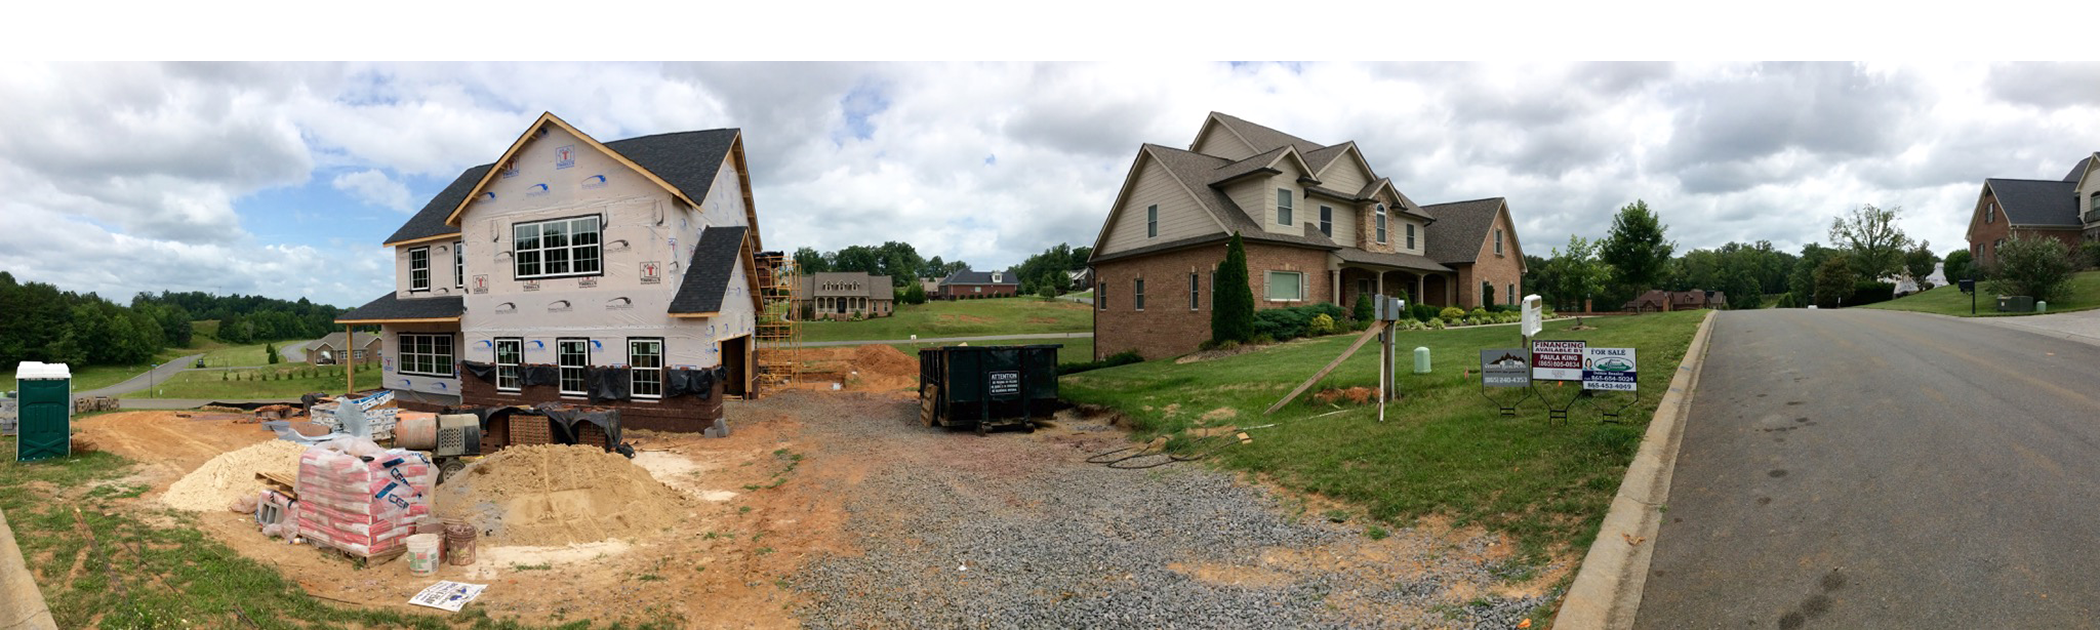 new homes for sale in landmark point subdivision sevierville tn